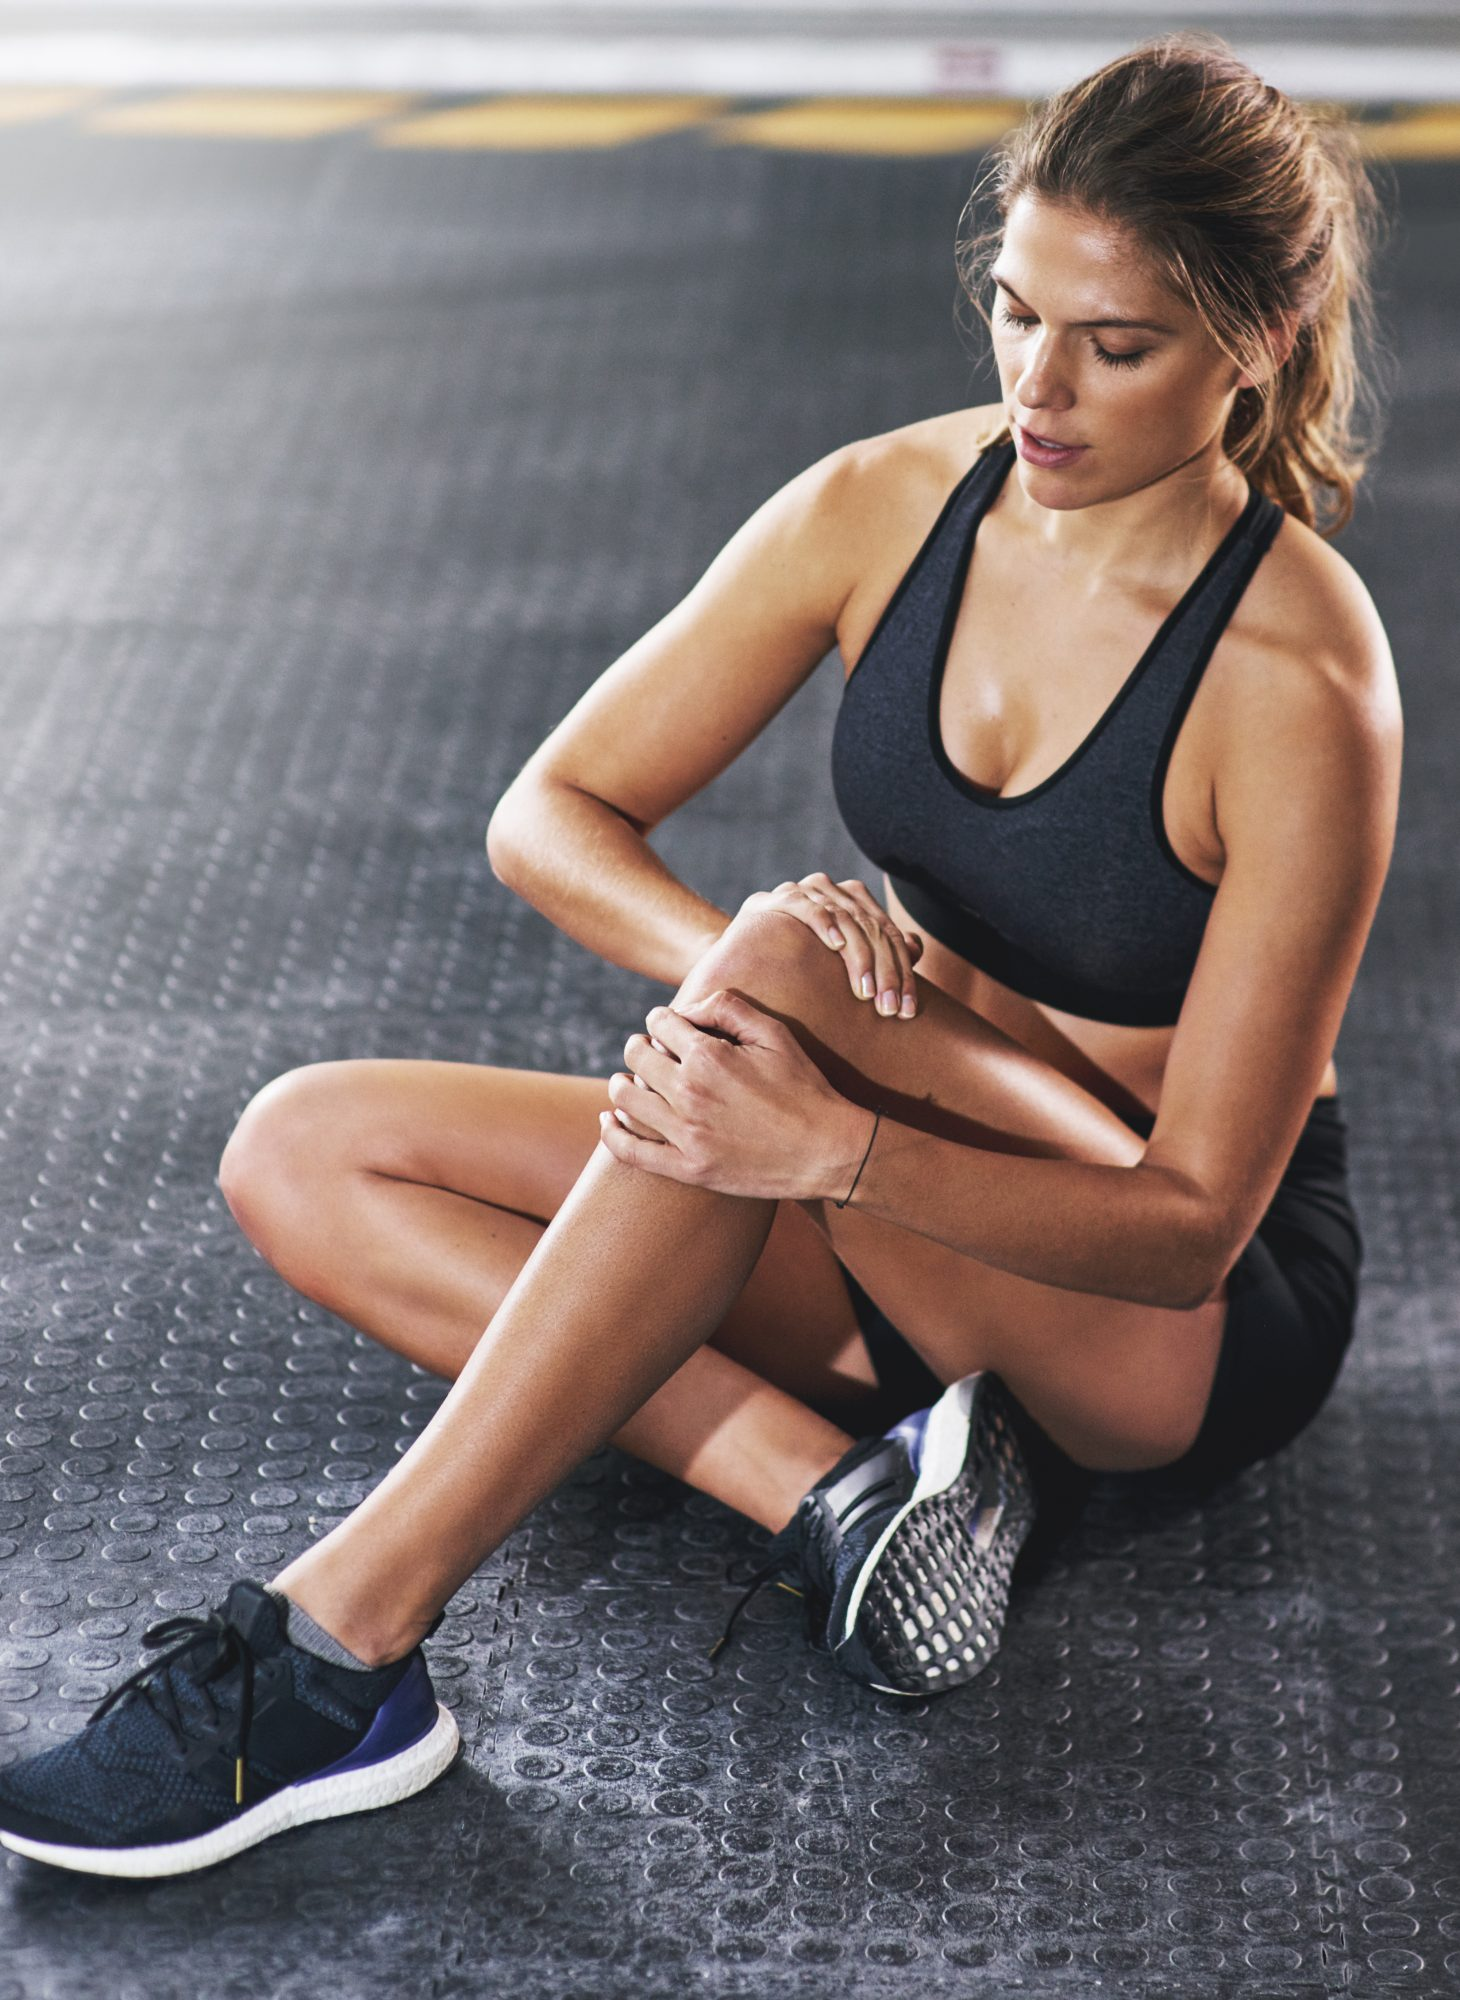 knee-pain-joints-gym-exercise-injury